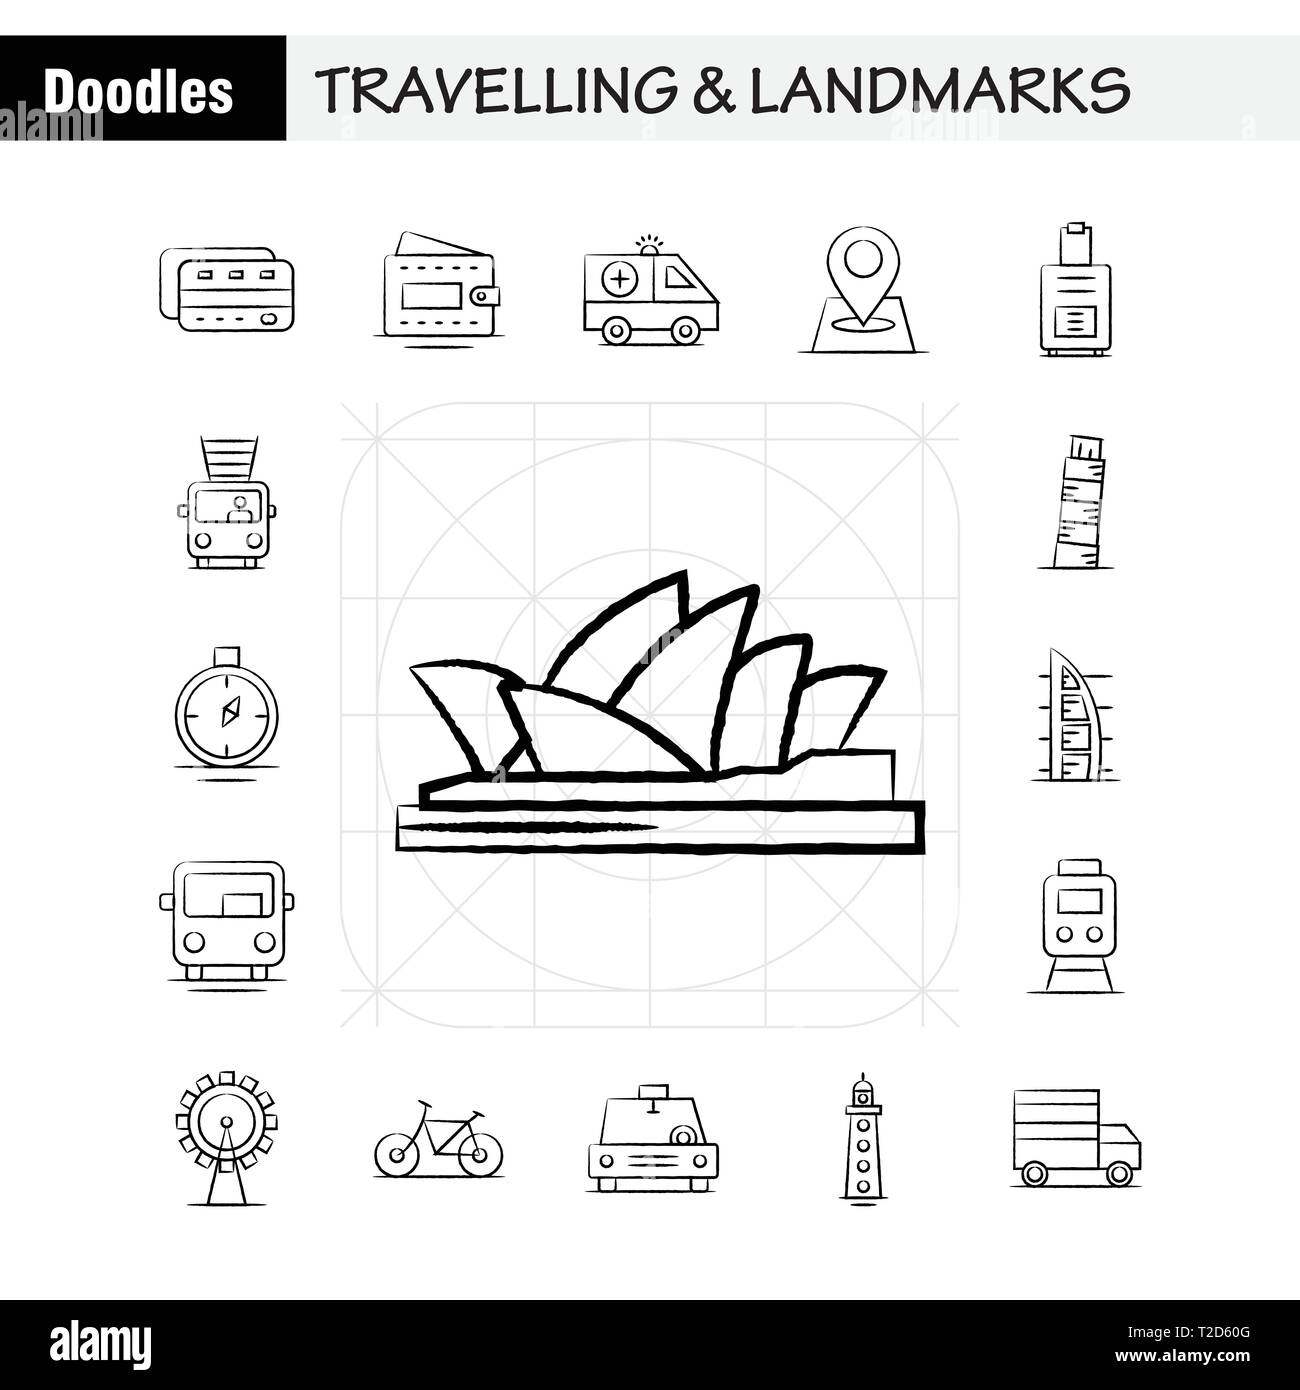 Travelling And Landmarks Hand Drawn Icon For Web Print And Mobile